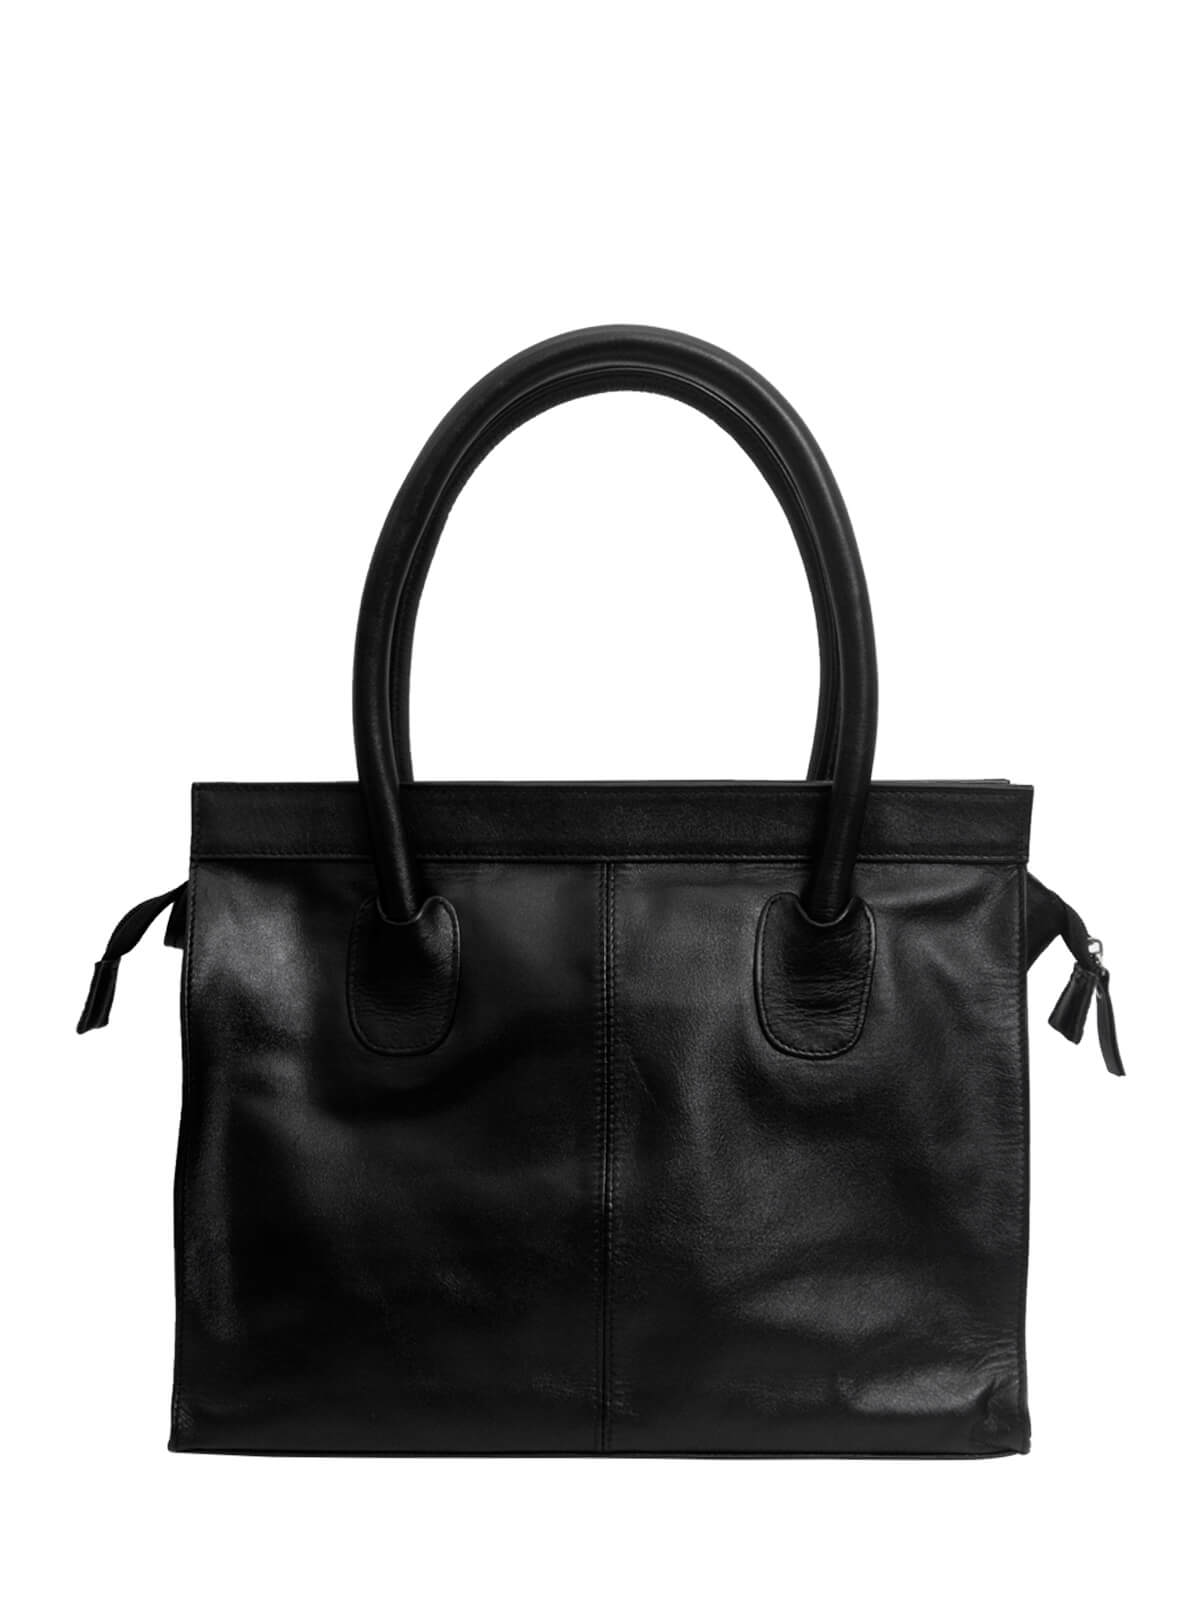 Black Chain Ladies Bag